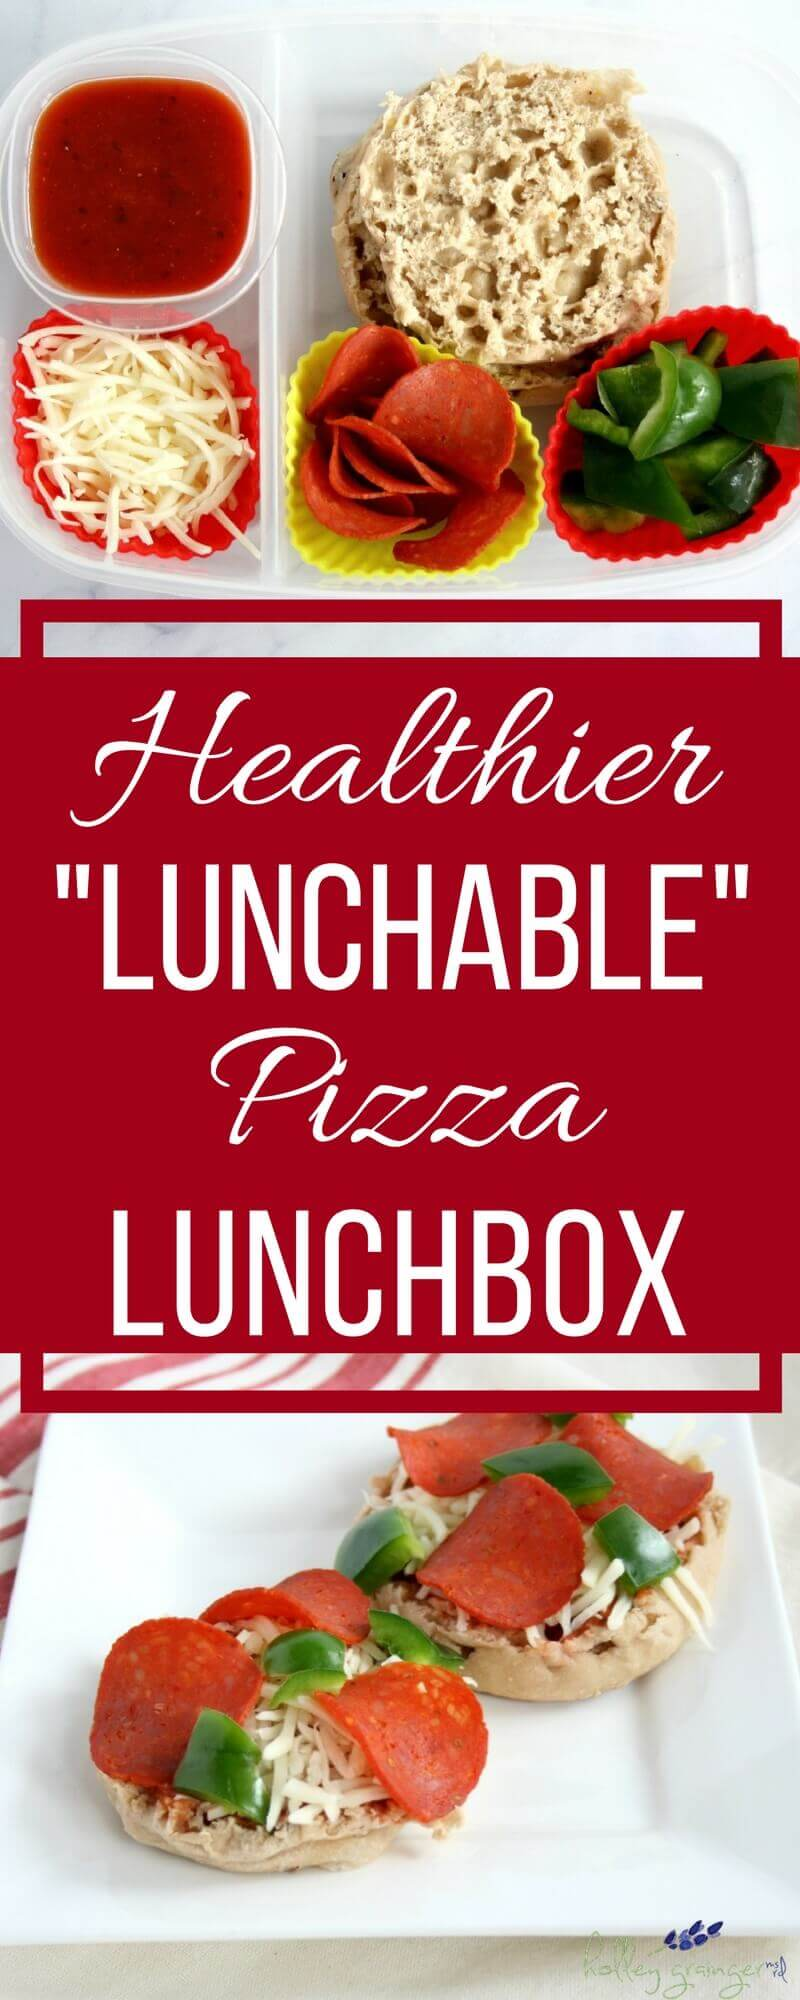 """This healthier """"lunchable"""" pizza lunchbox is just as easy and as fun as the classic pre-made lunch but with better nutrition thanks to some simple and fresh swaps. Who knew pizza could be good for you?"""